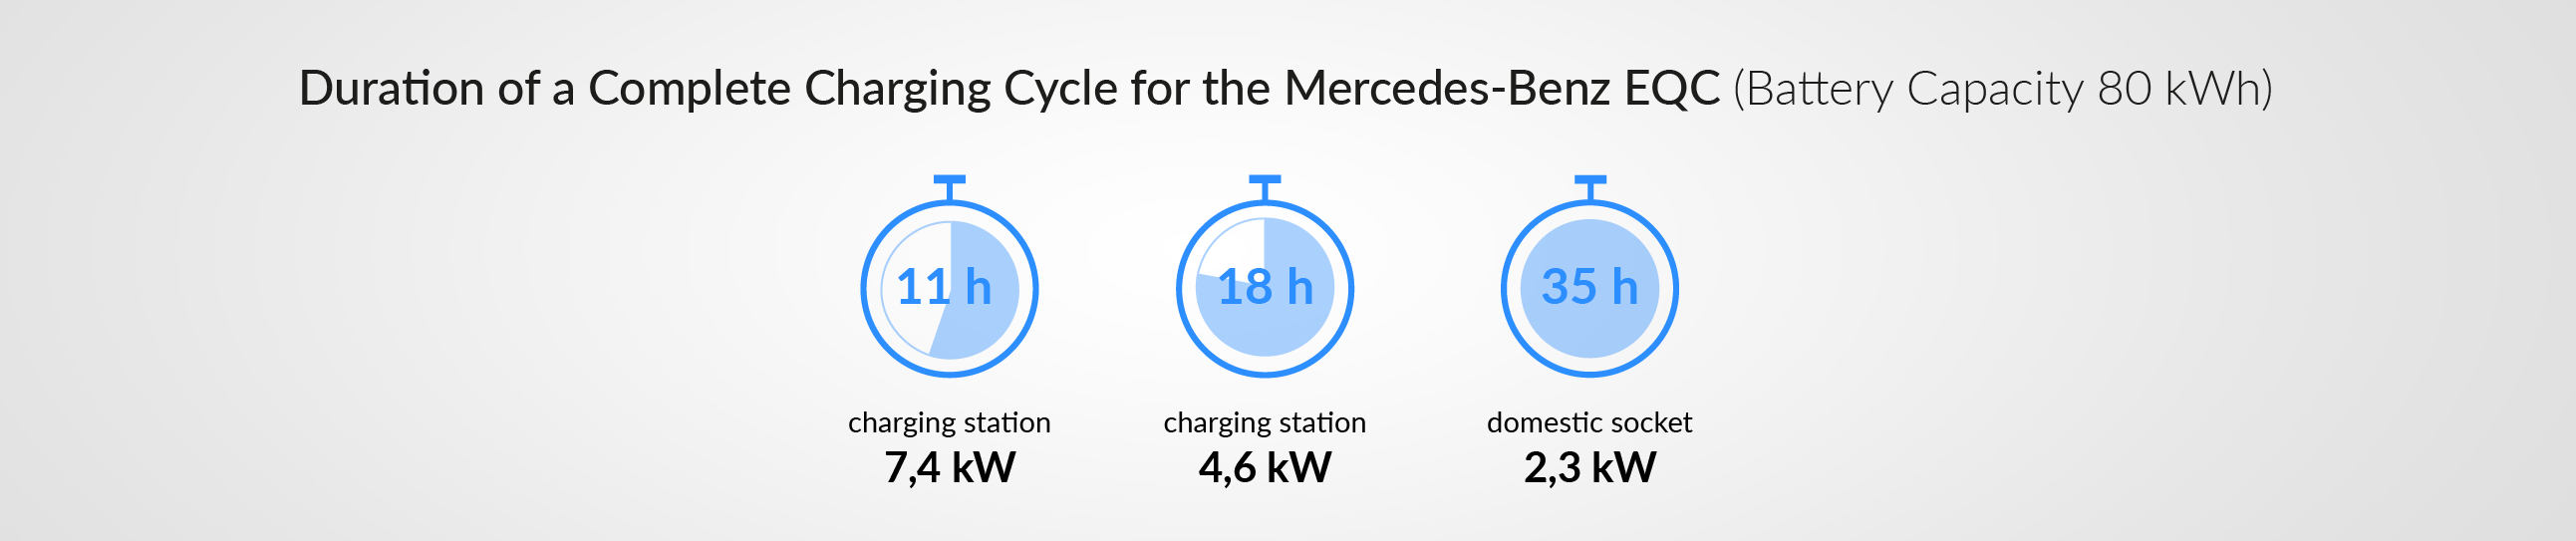 Charging time for your Mercedes-Benz EQC